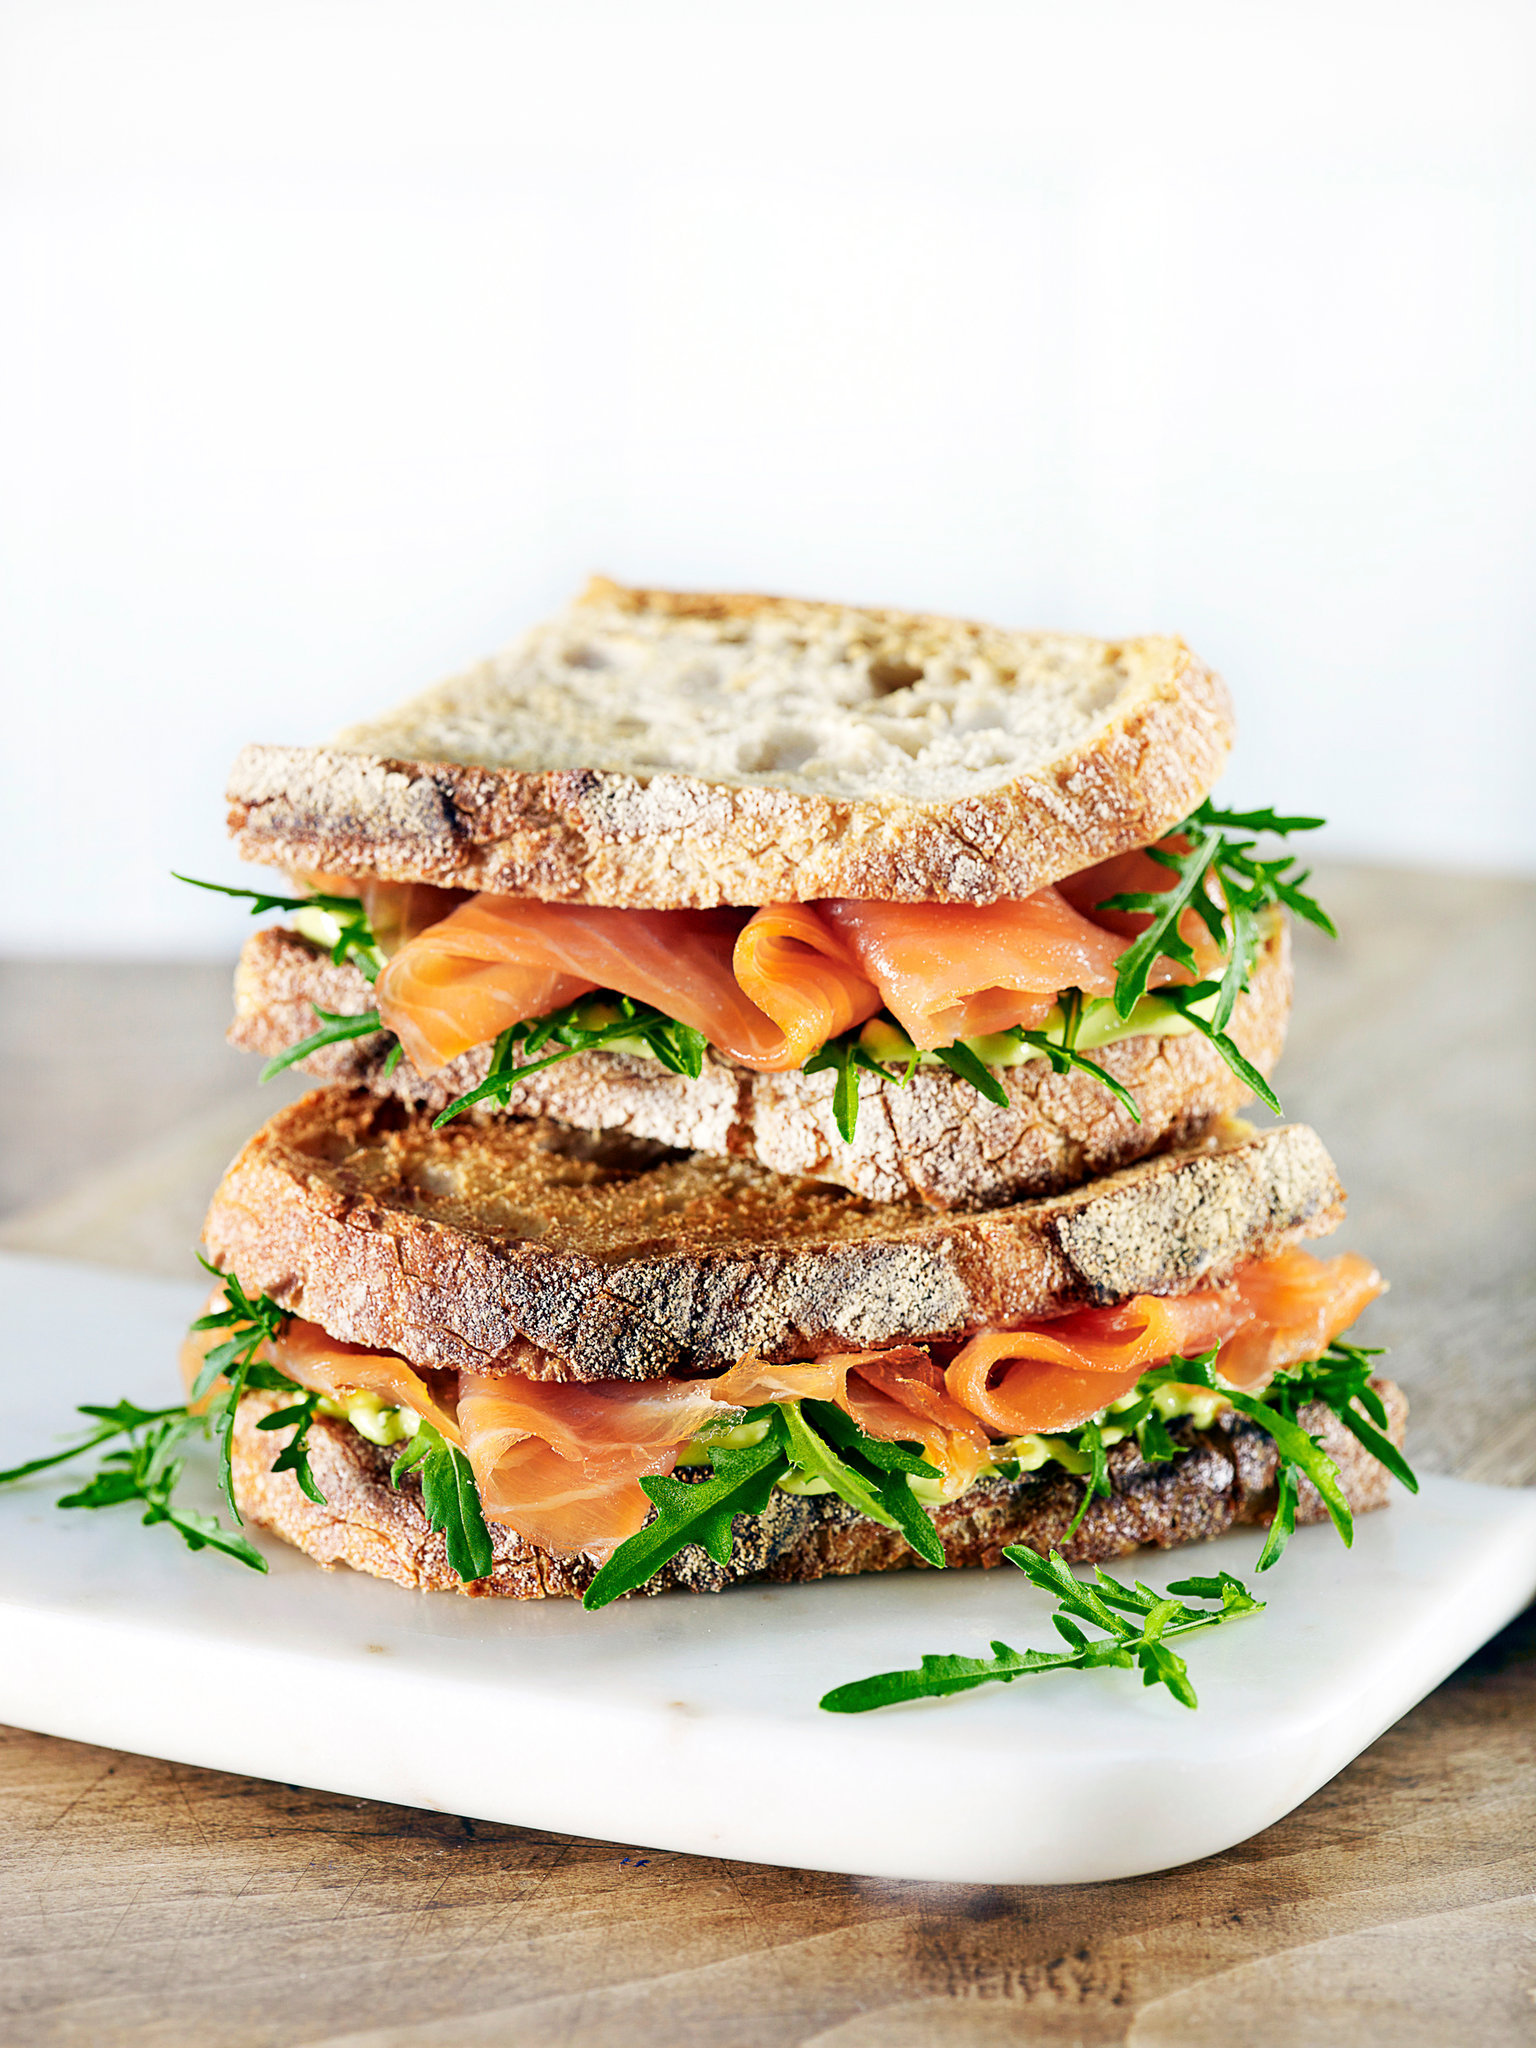 Salmon sandwich 46691 copy.jpg